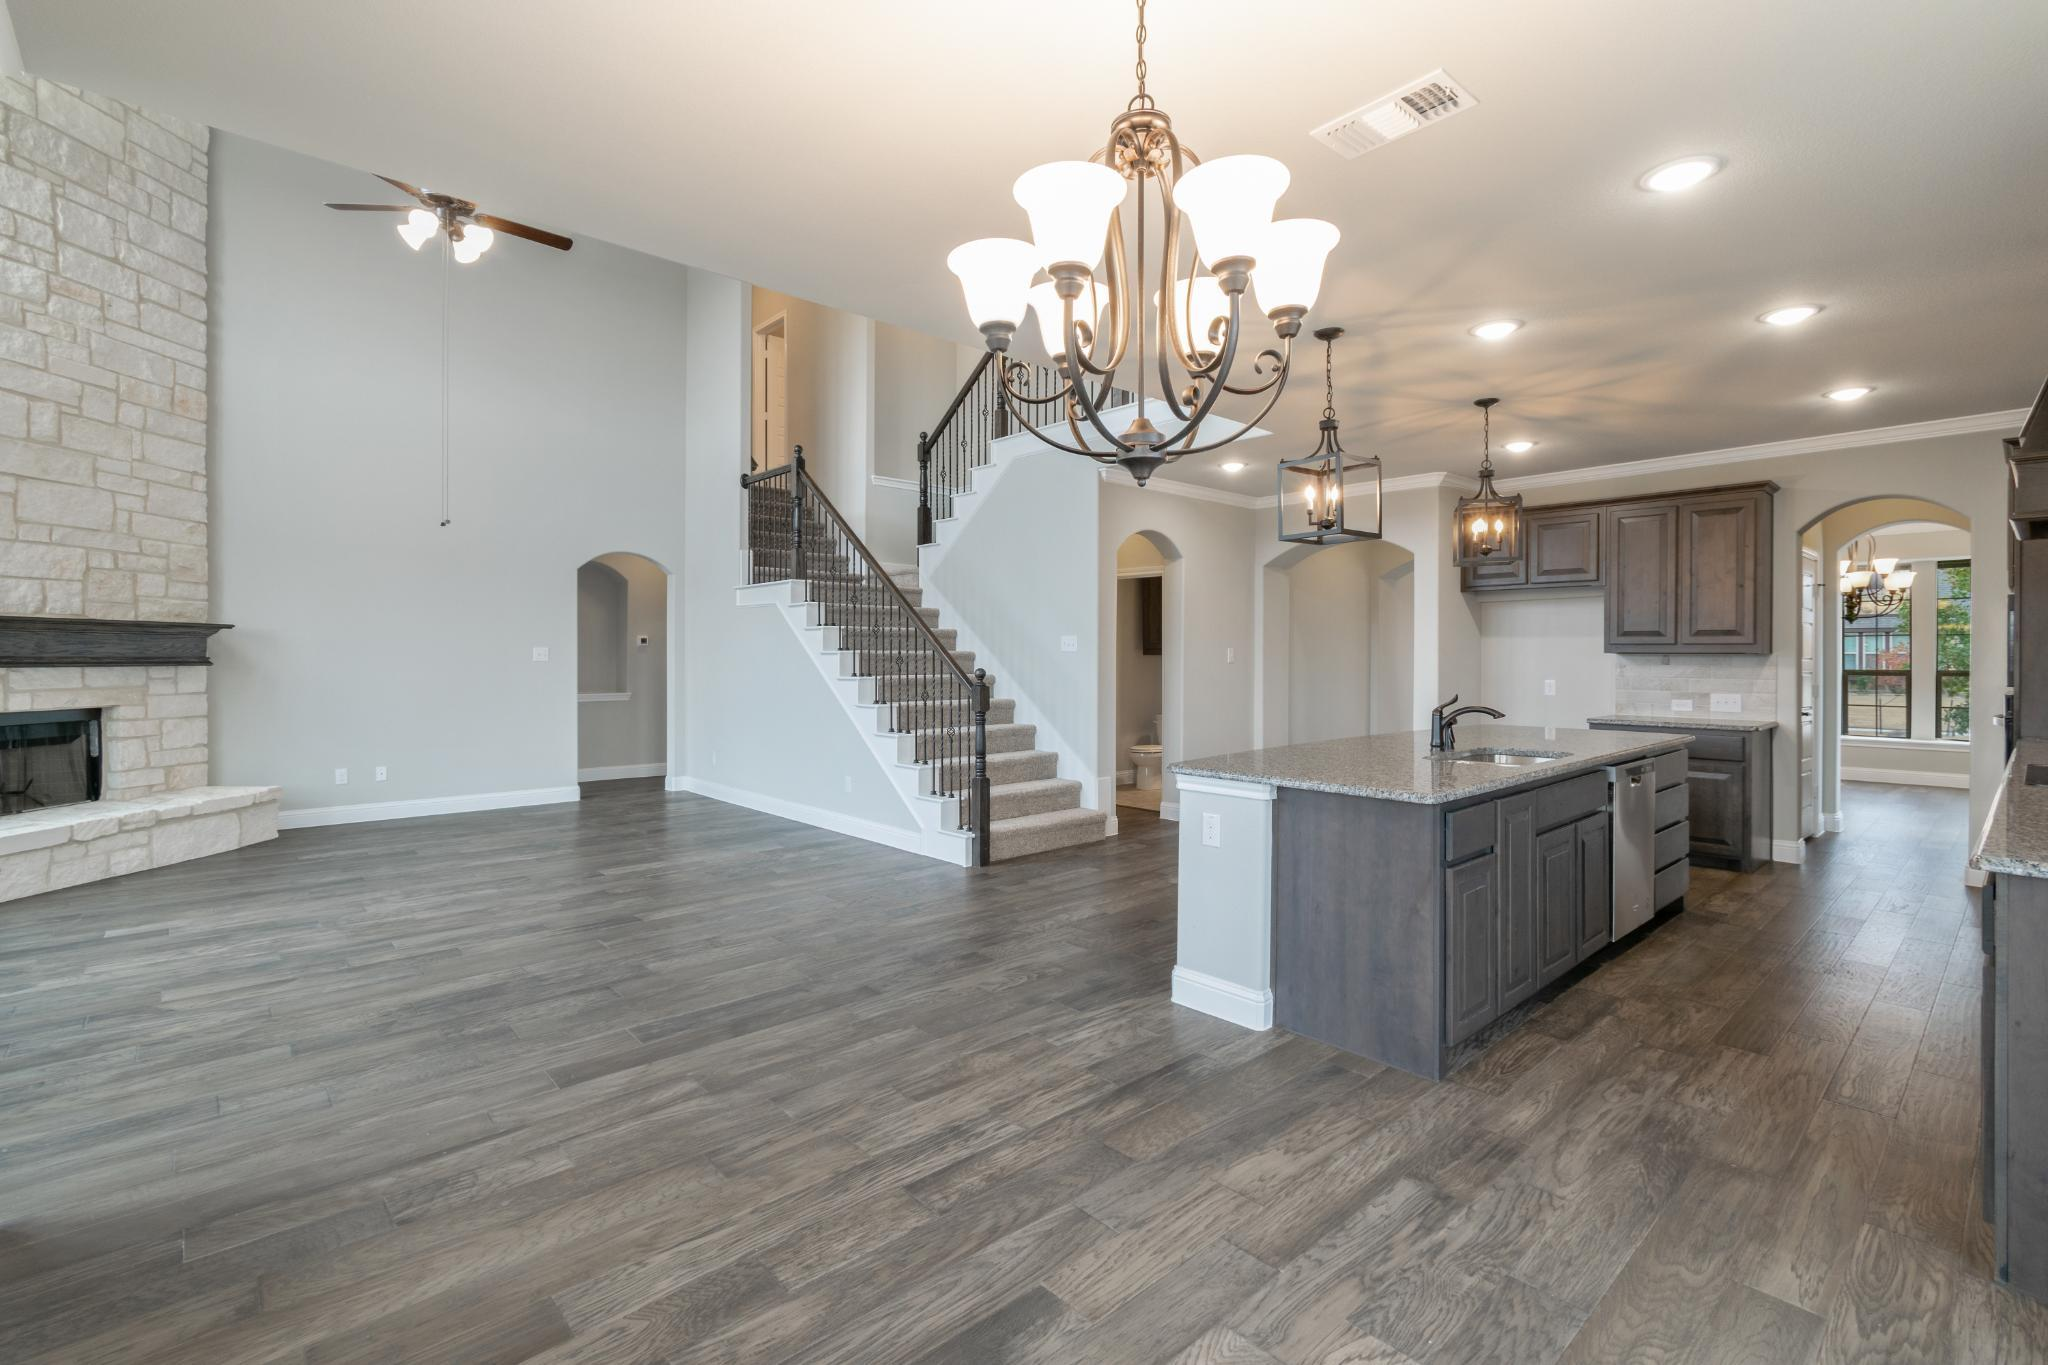 Kitchen featured in the 3218 By Antares Homes in Fort Worth, TX